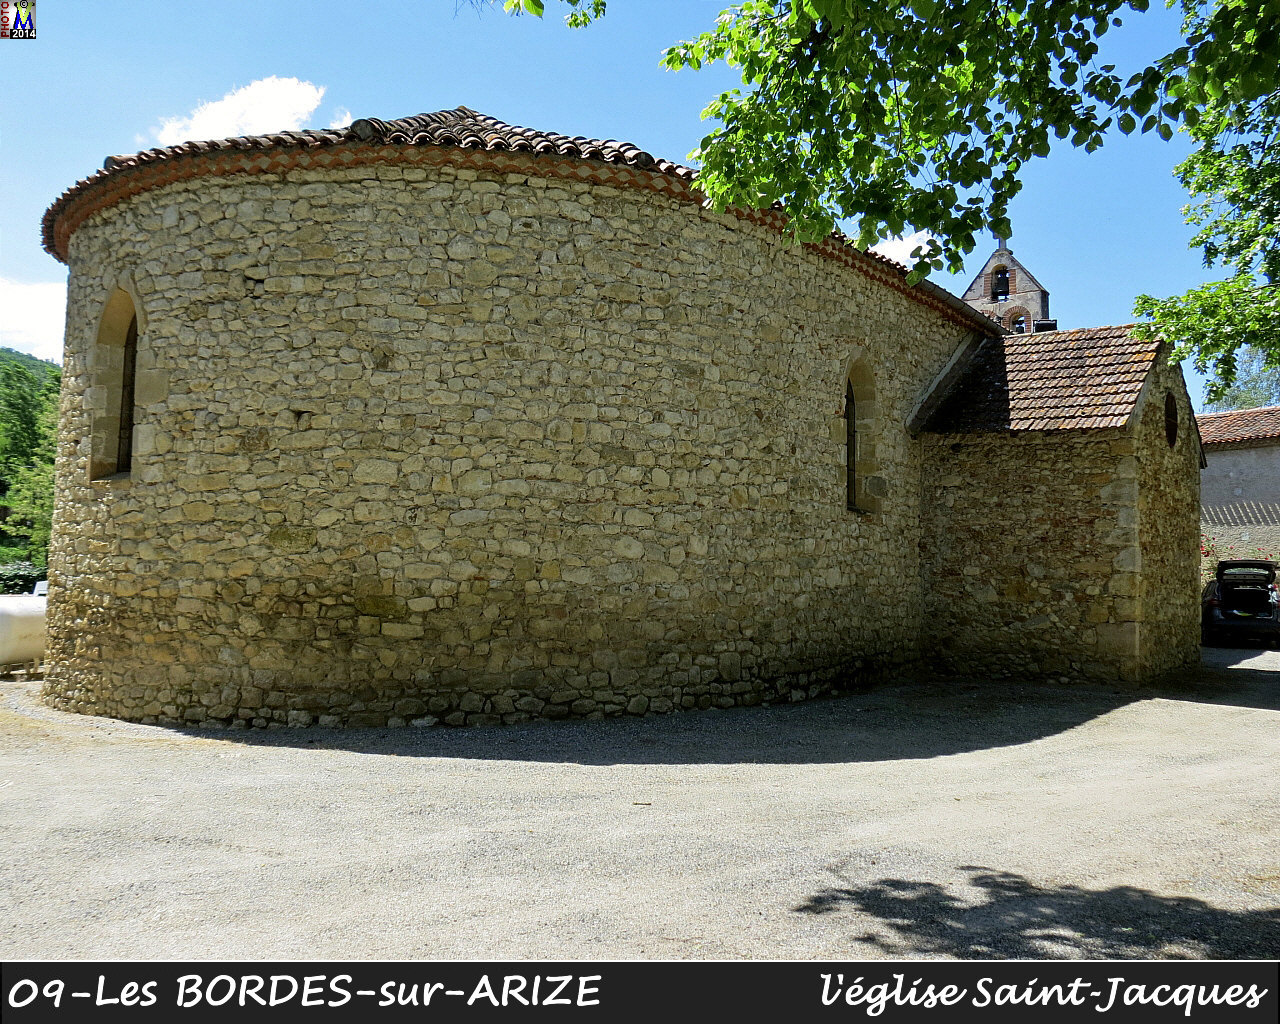 09BORDES-ARIZE_eglise_104.jpg